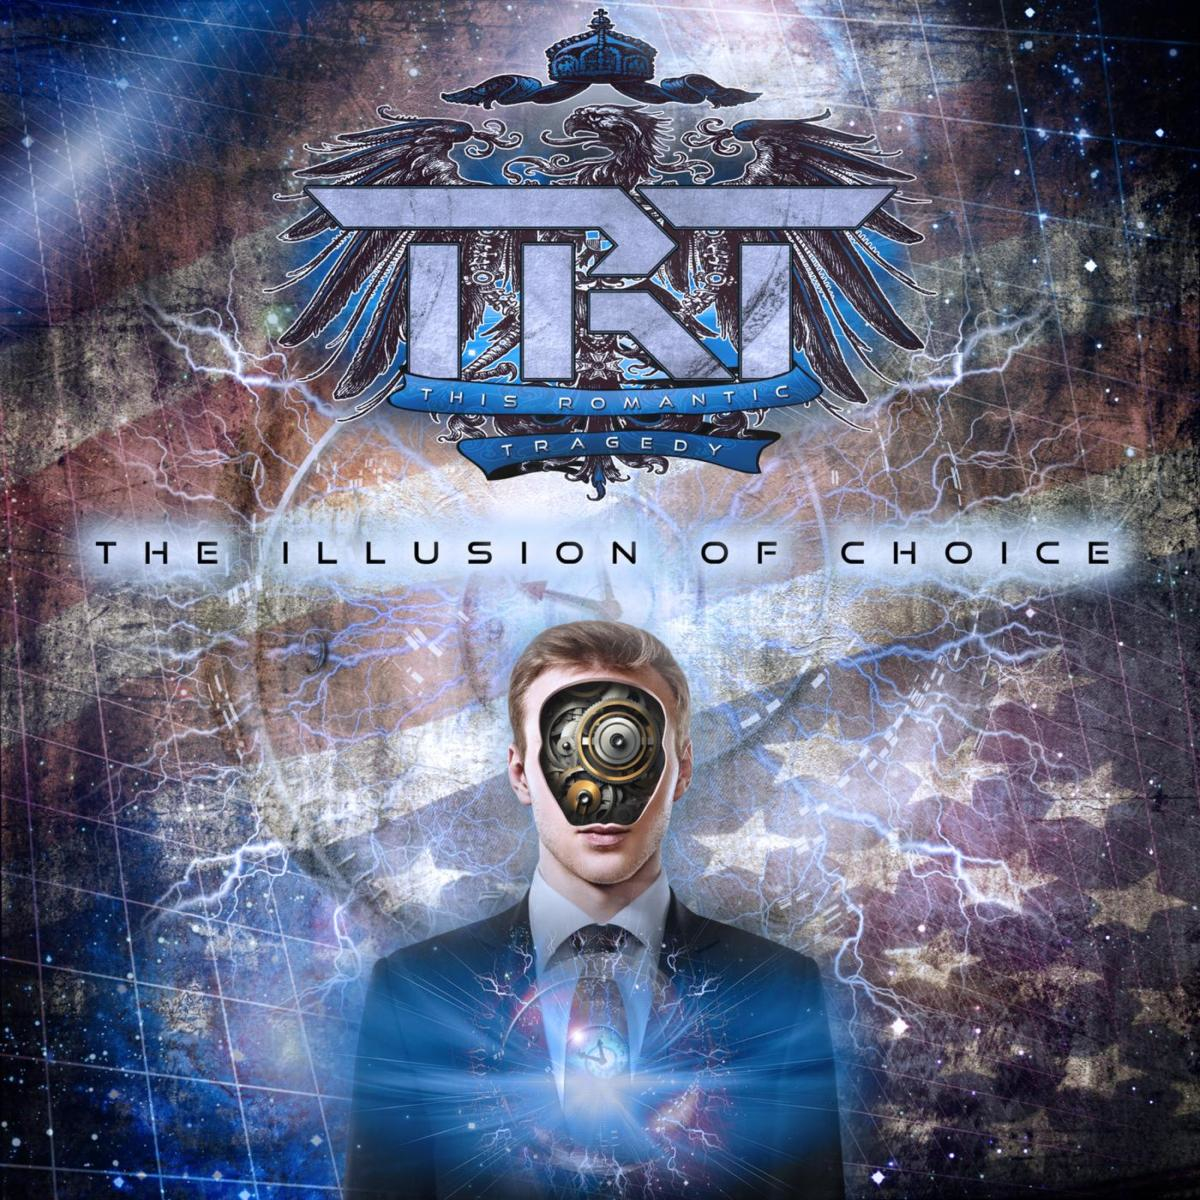 This Romantic Tragedy - The Illusion of Choice (2013)